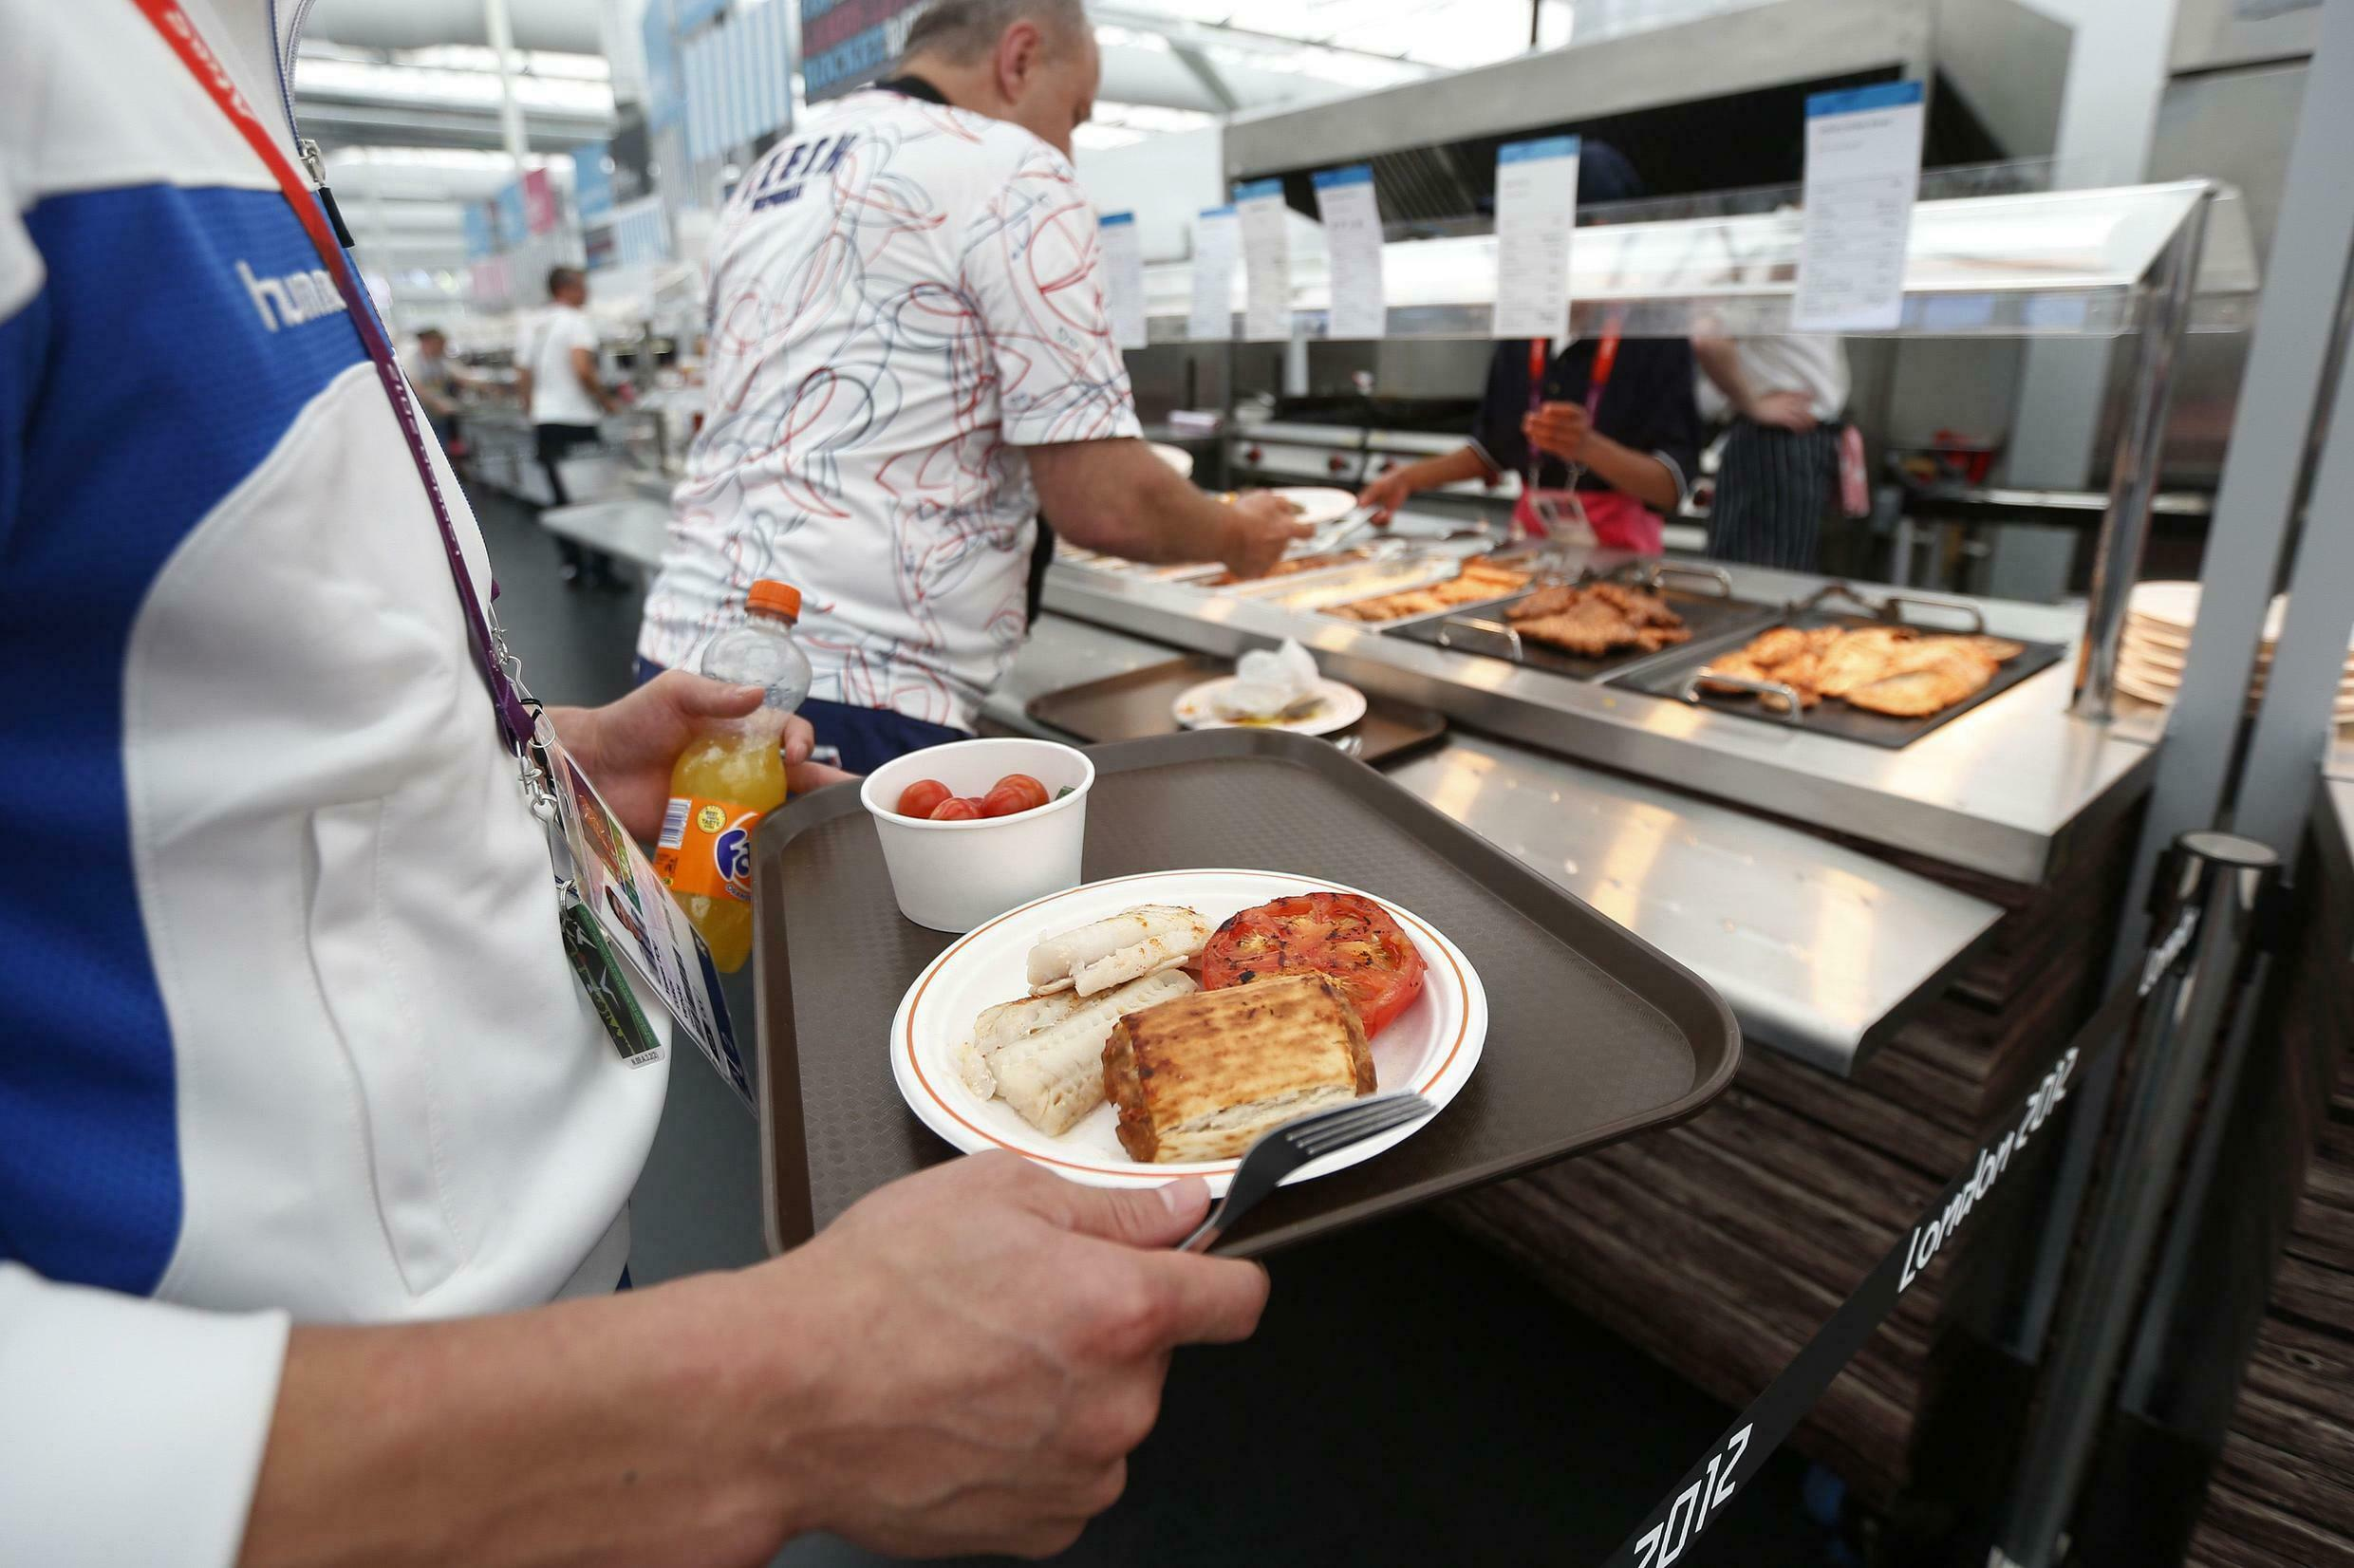 An athlete waits to be served in the dining hall inside the Olympic Games Village in Stratford